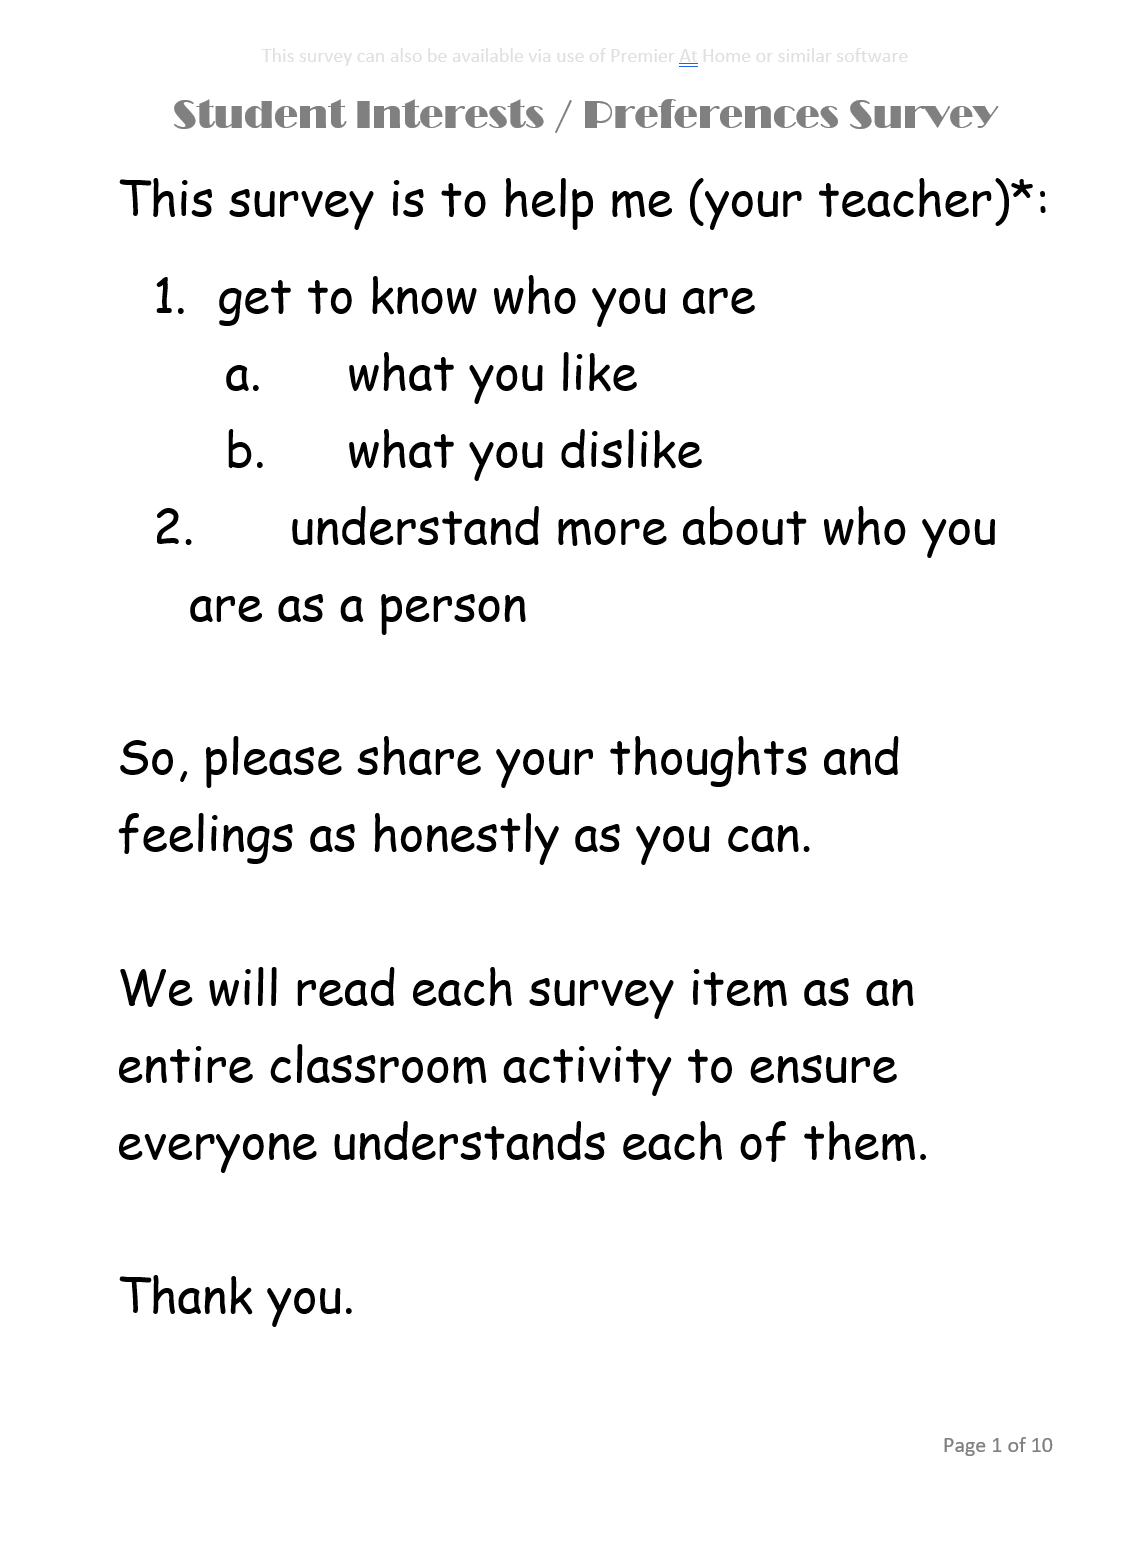 student interests-preferences survey - page 1 of 10 - Artifact Collection